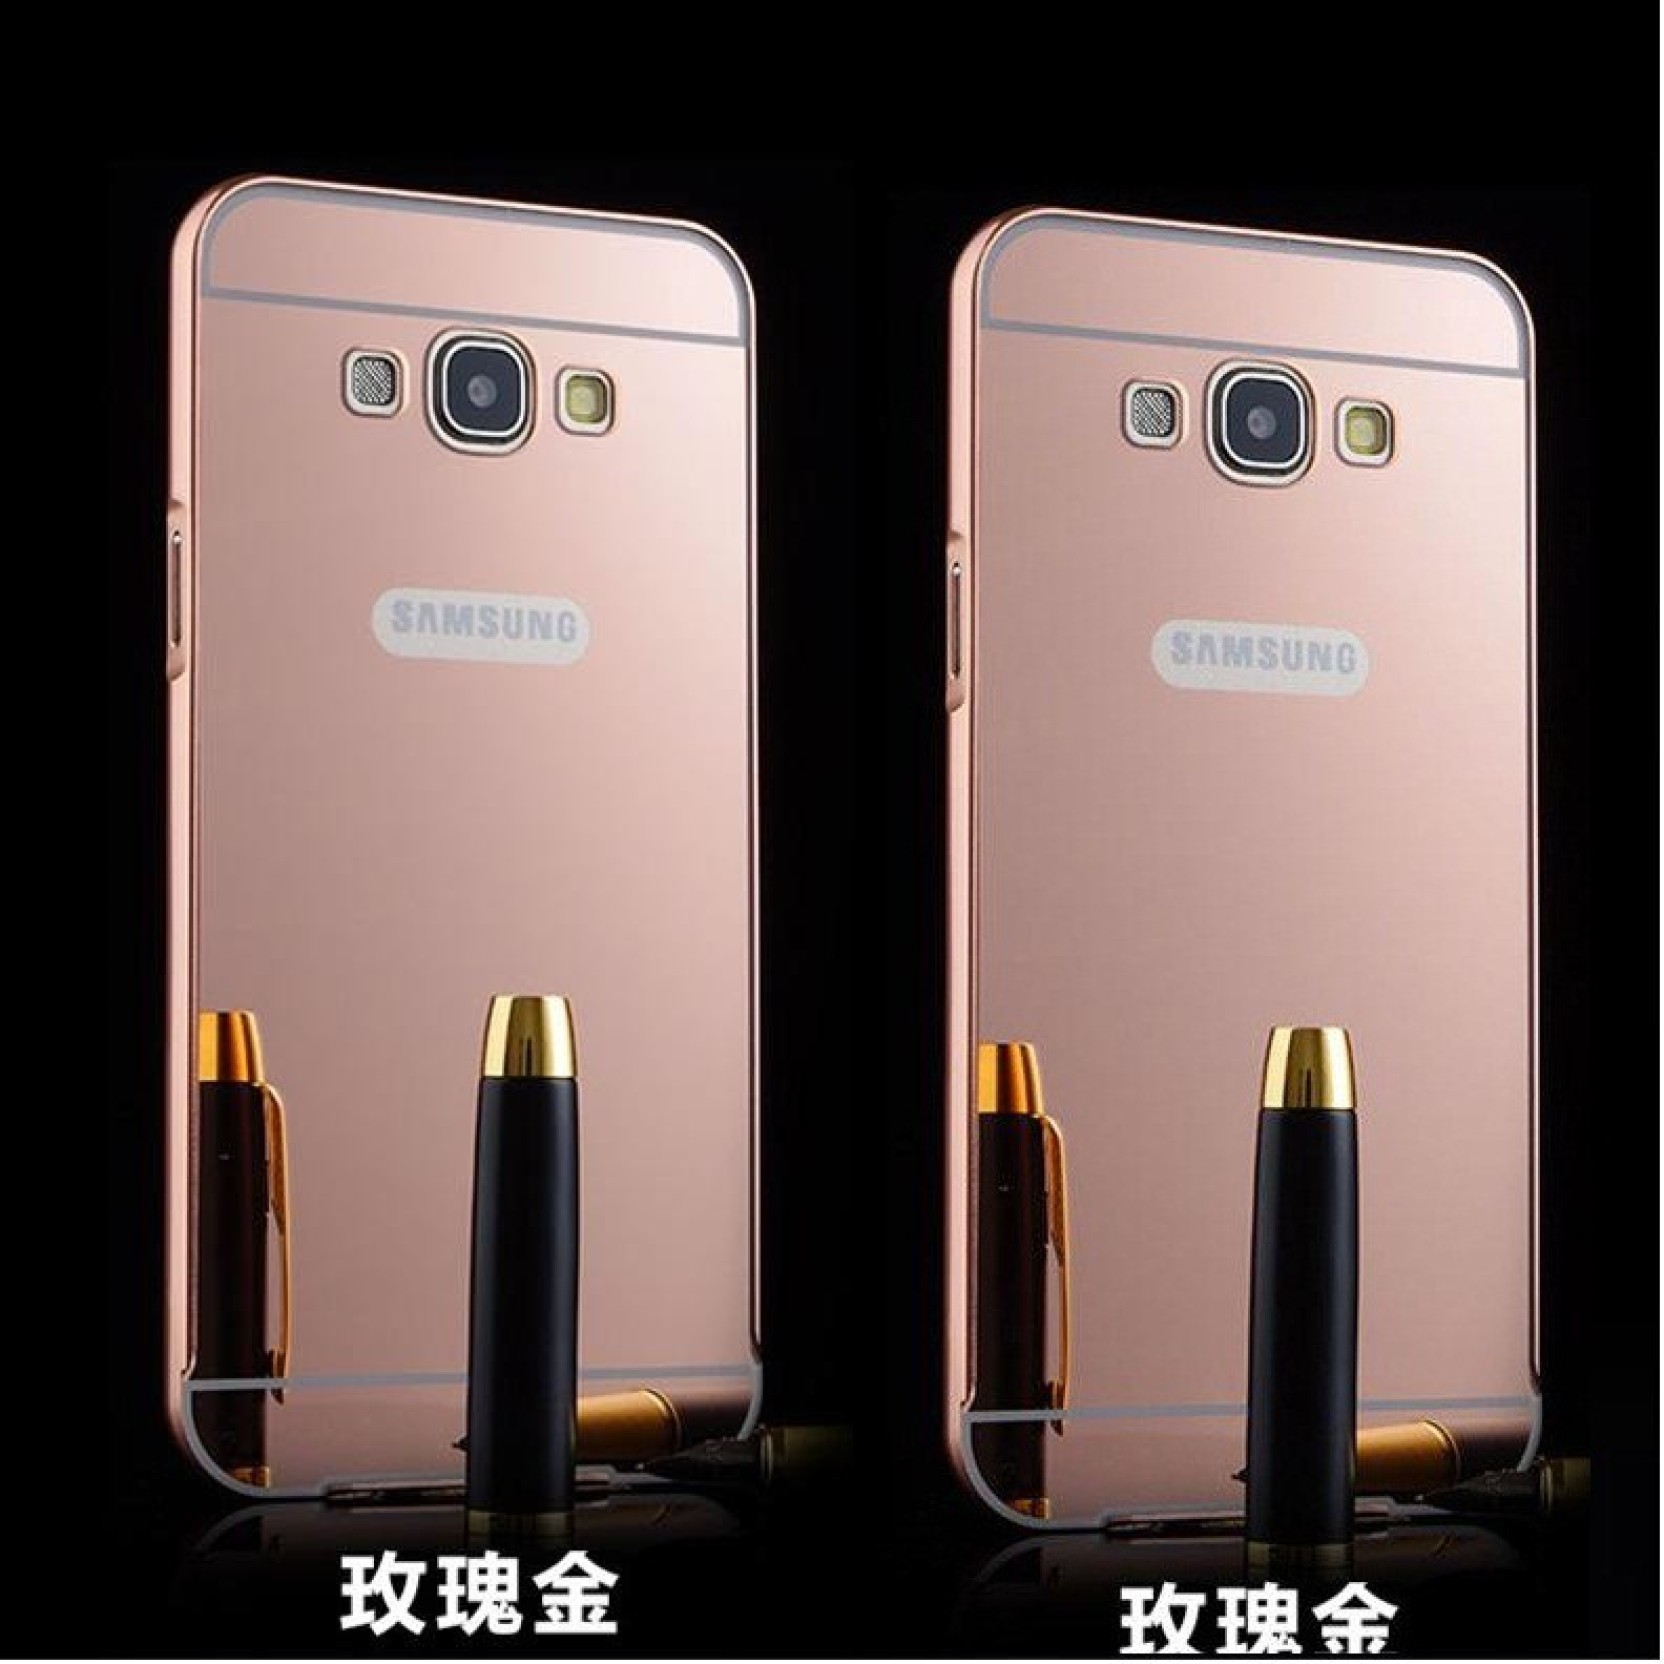 Sma Back Cover For Samsung Galaxy On7 Metal Bumper Plus Acrylic Note 4 Mirror Backcase With Aluminium Black Case Share